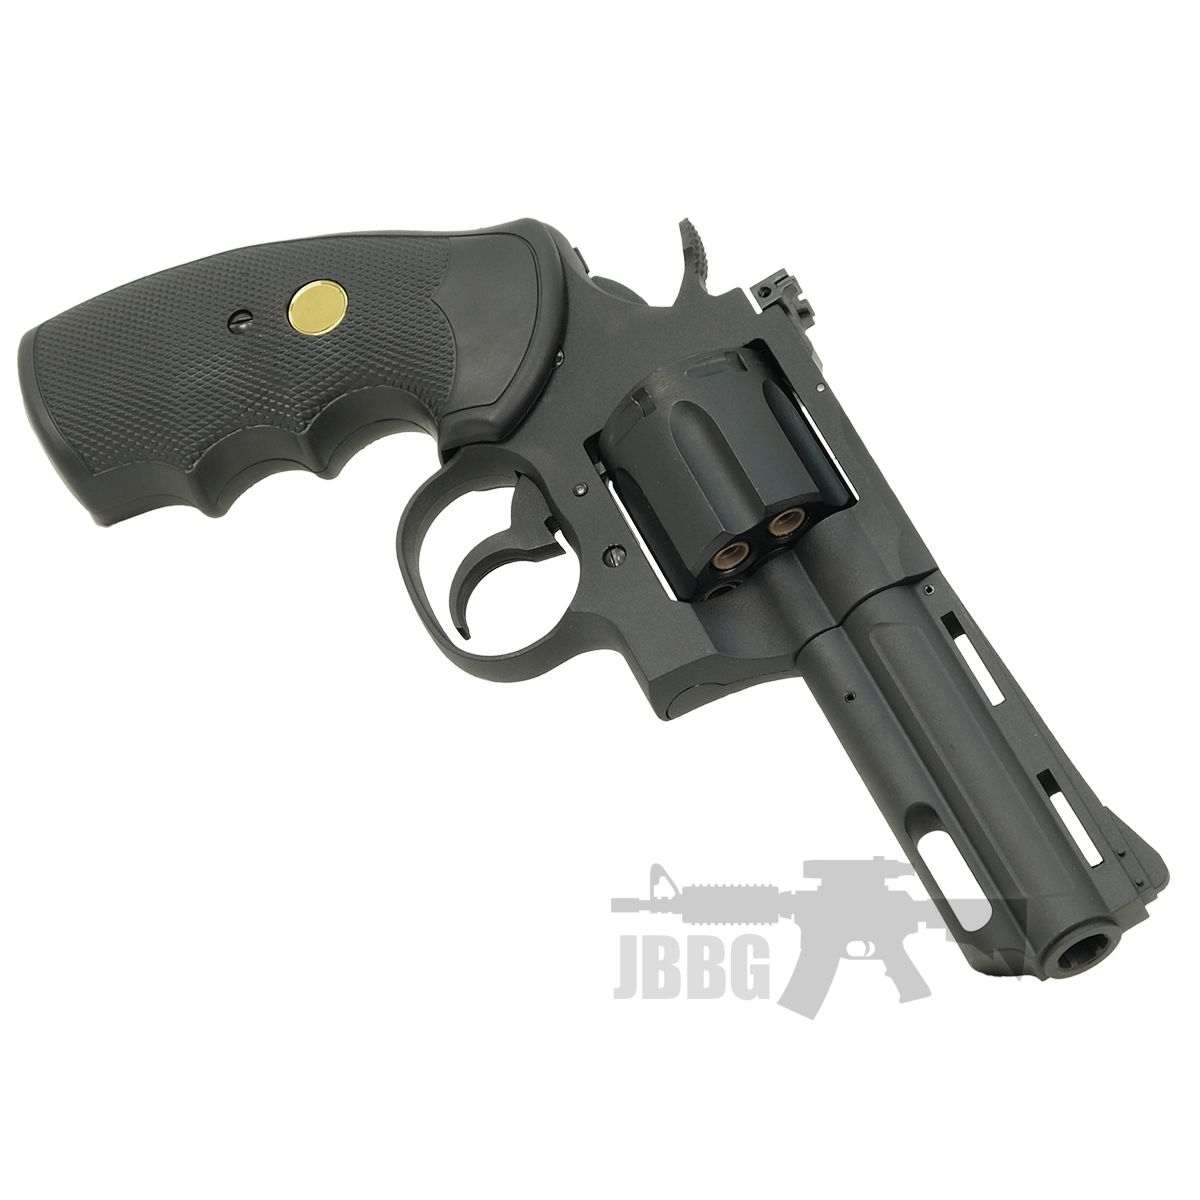 King Arms Co2 Airsoft Revolver 8